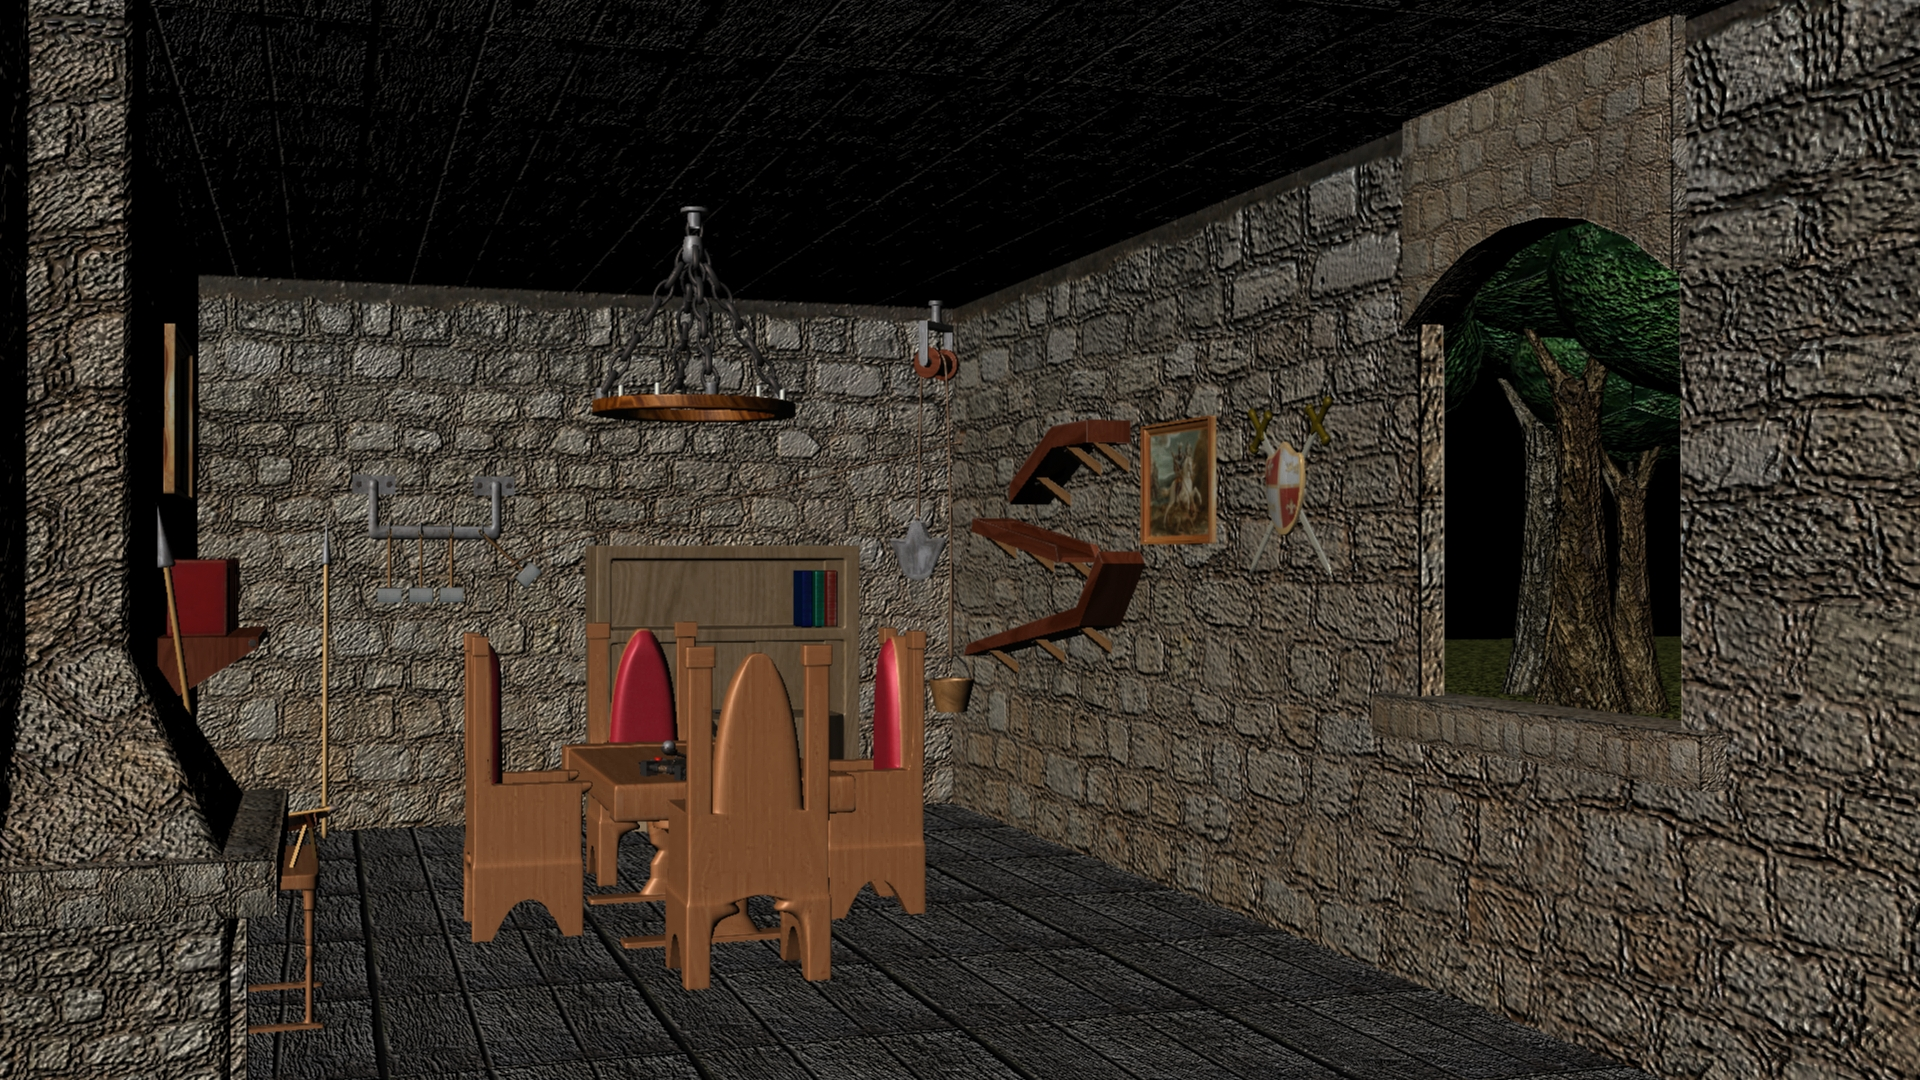 Casa medieval interior by darkeler on deviantart for Casa interior